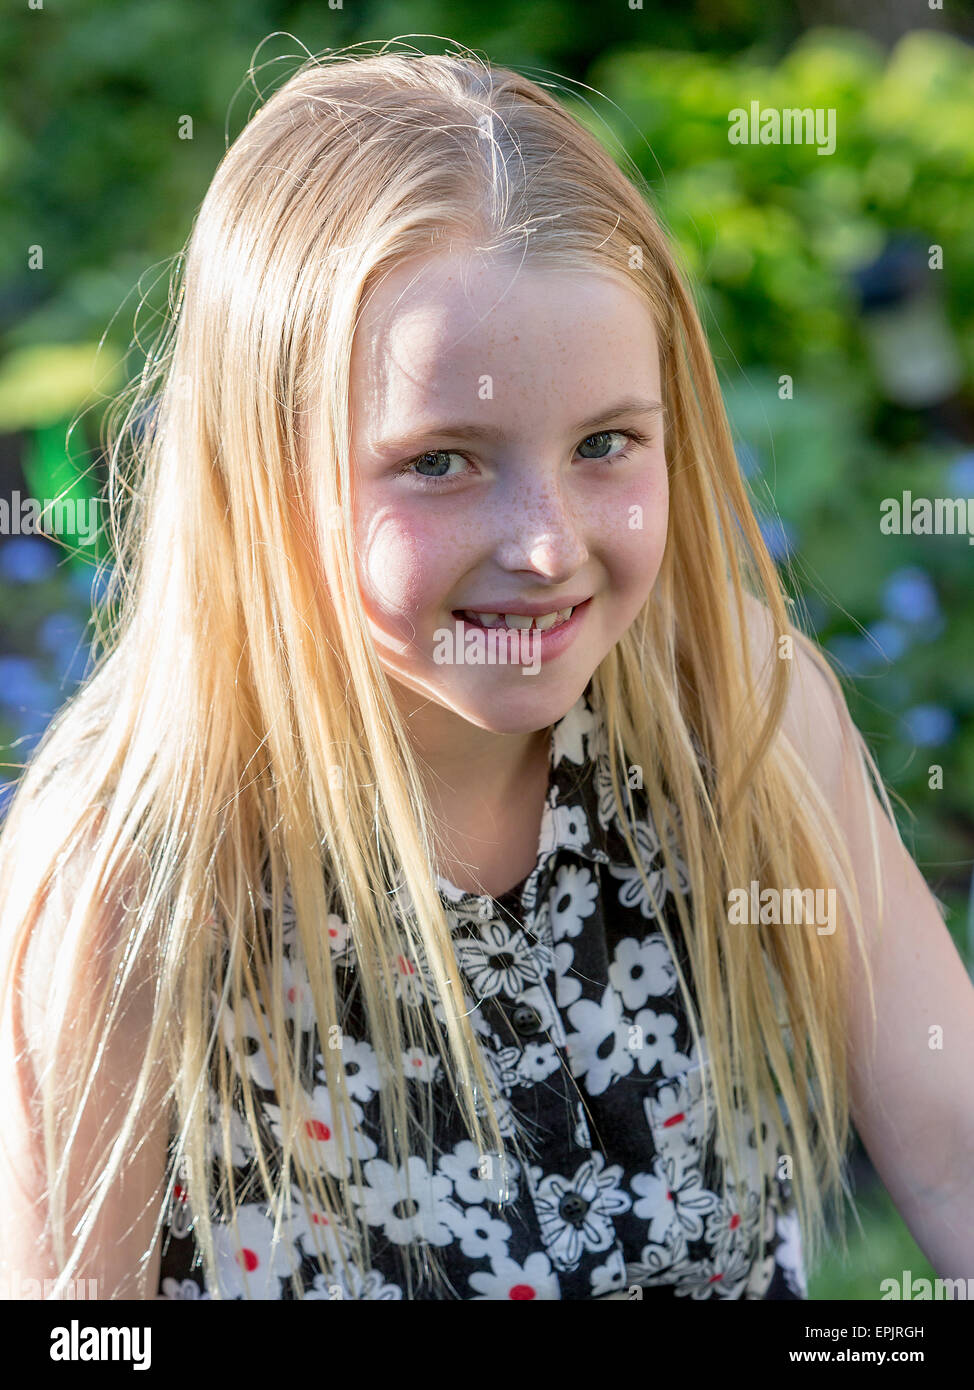 Blonde 8 Year Old Girl Sitting In A Garden Posing For The